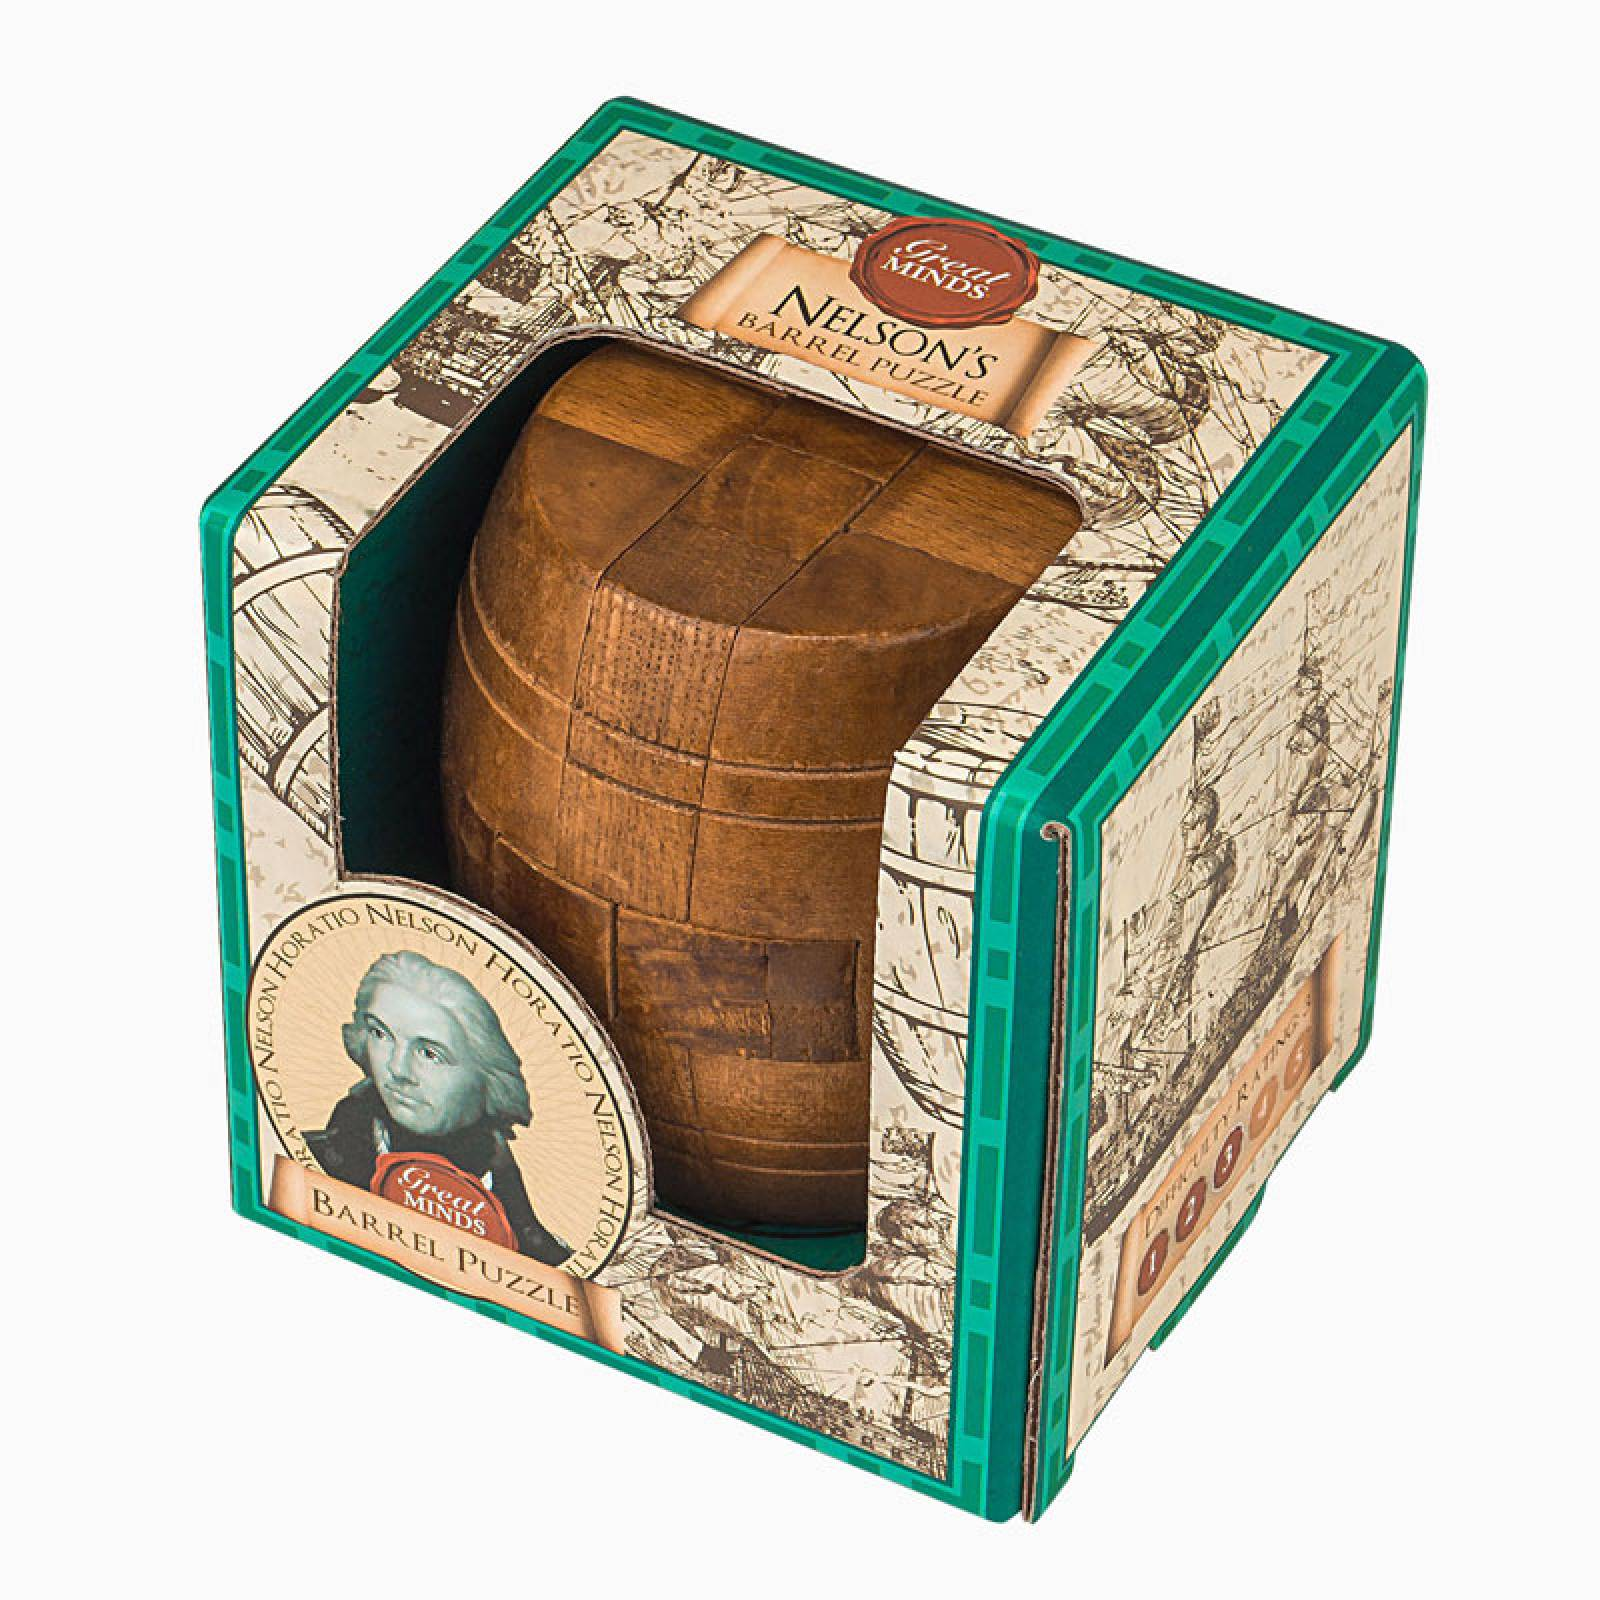 Great Minds Nelson's Barrel Wooden Puzzle